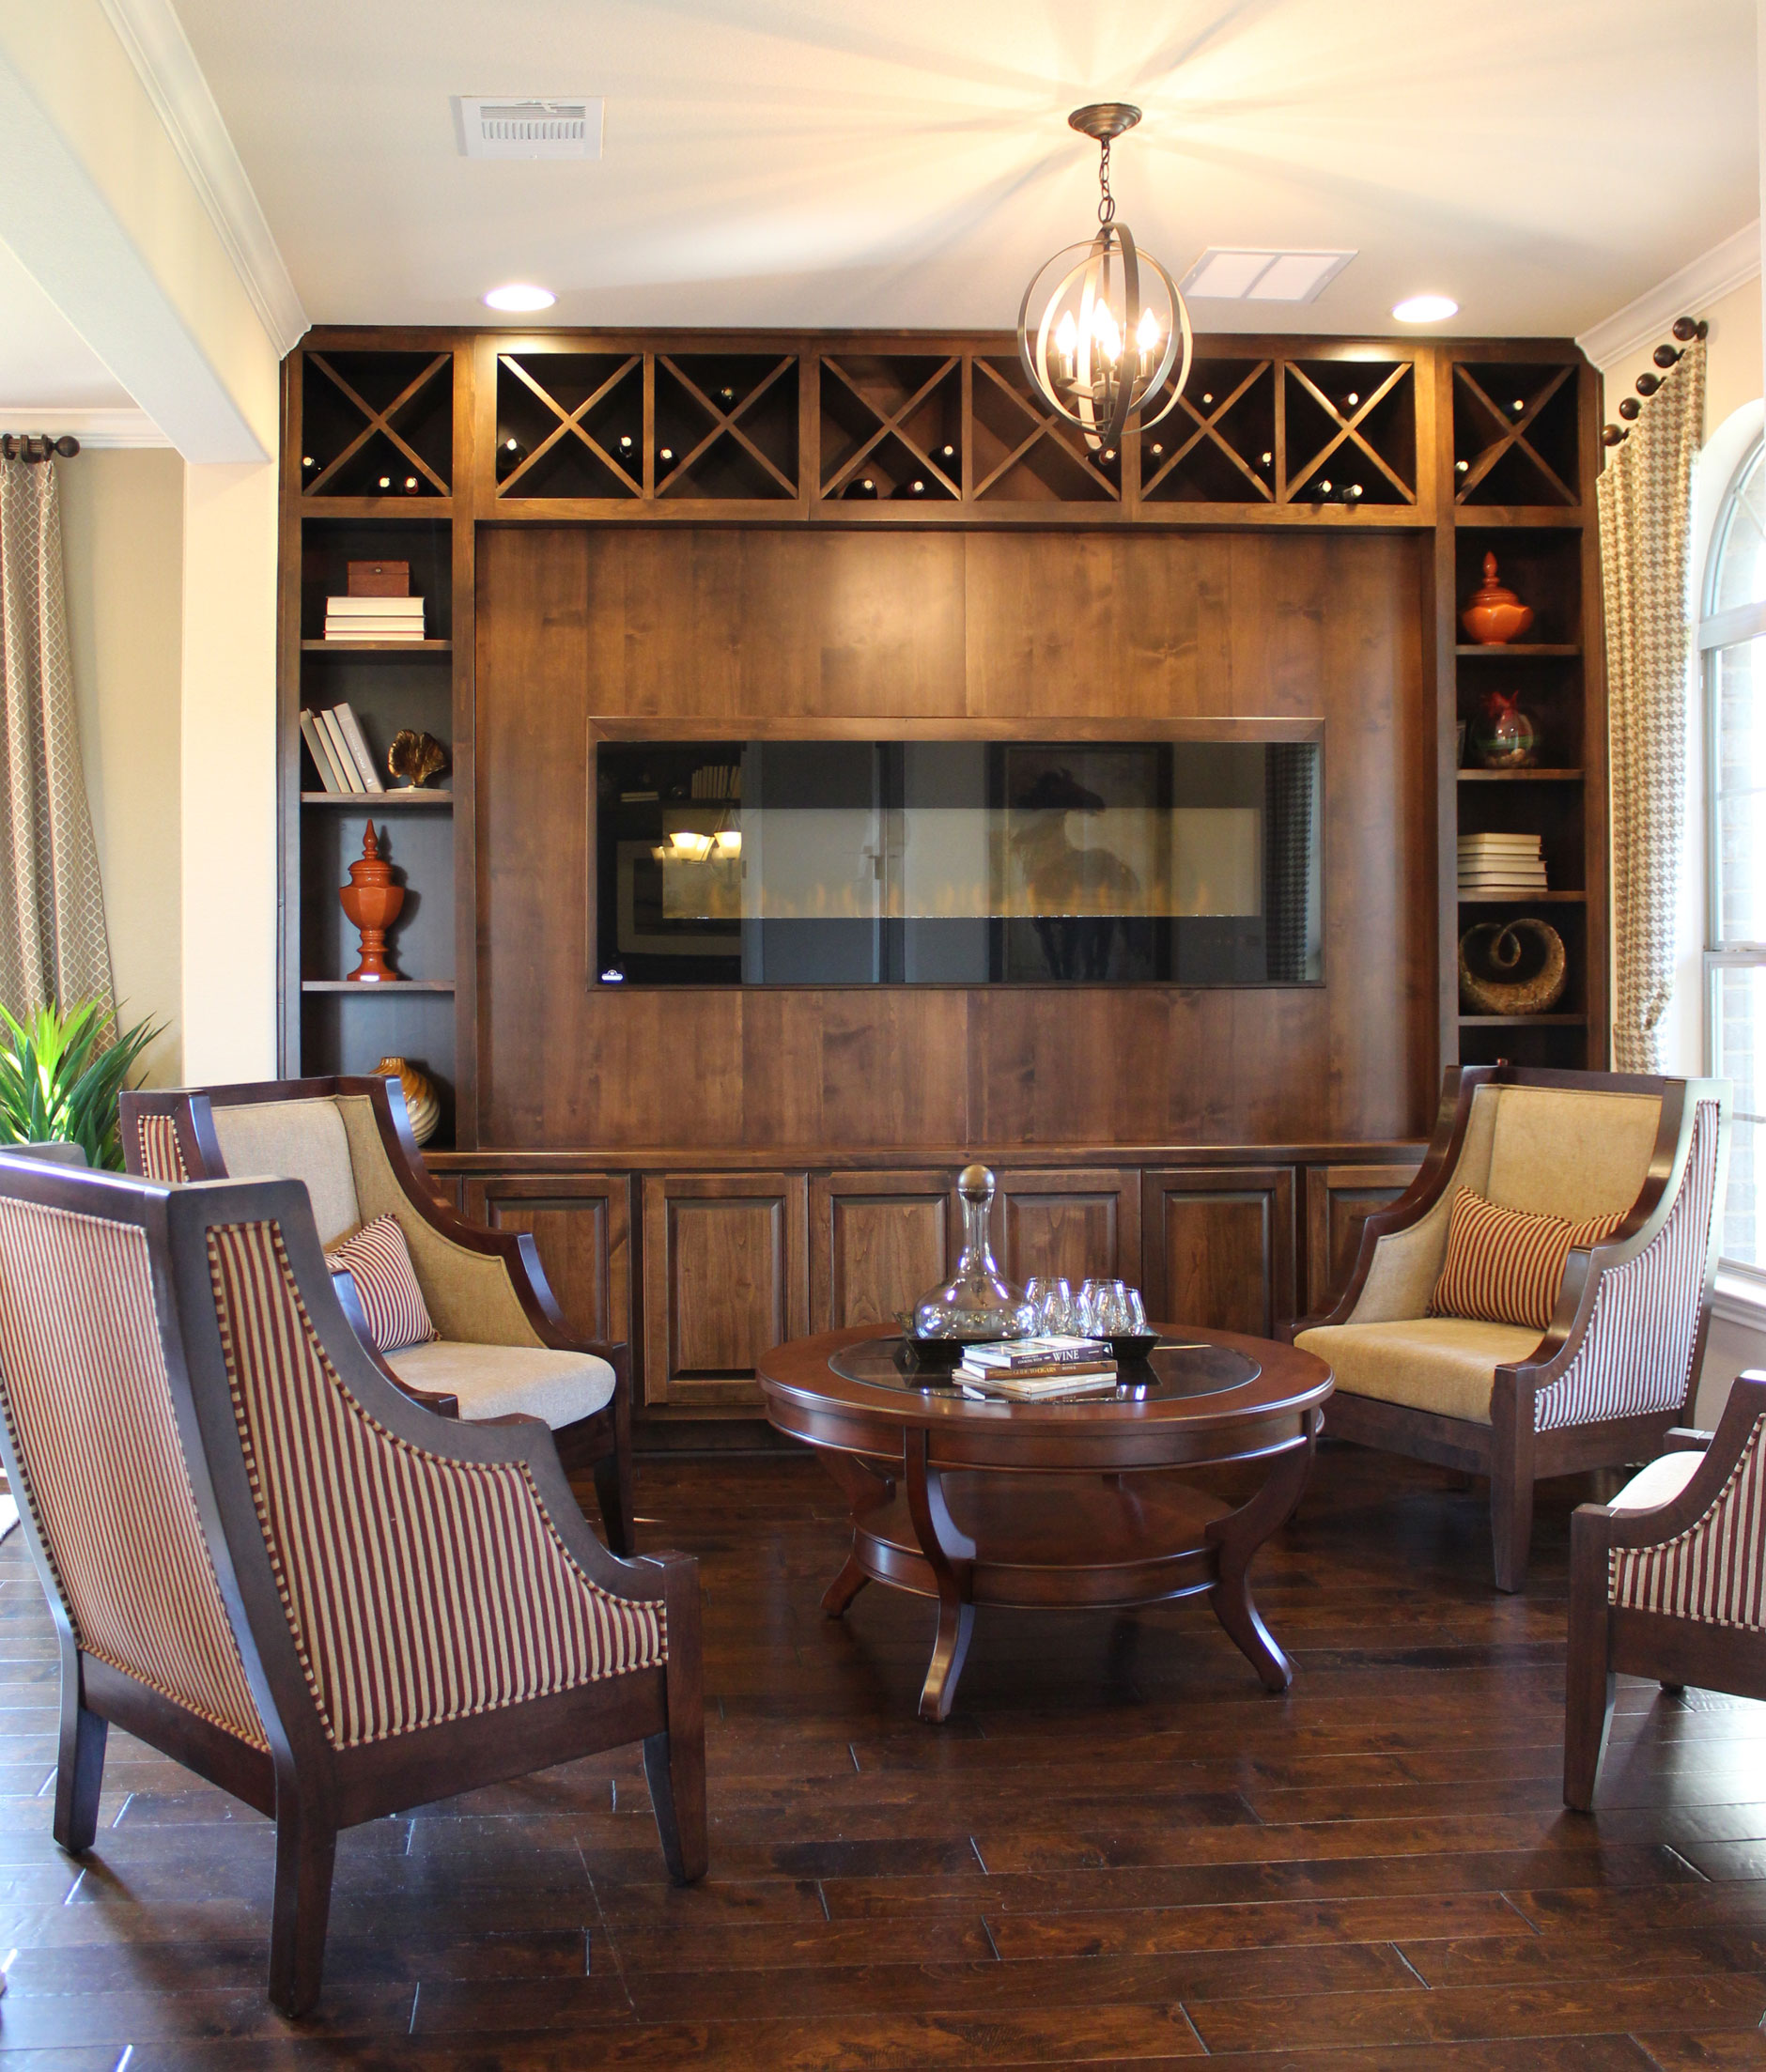 crystal falls burrows cabinets central texas builder direct